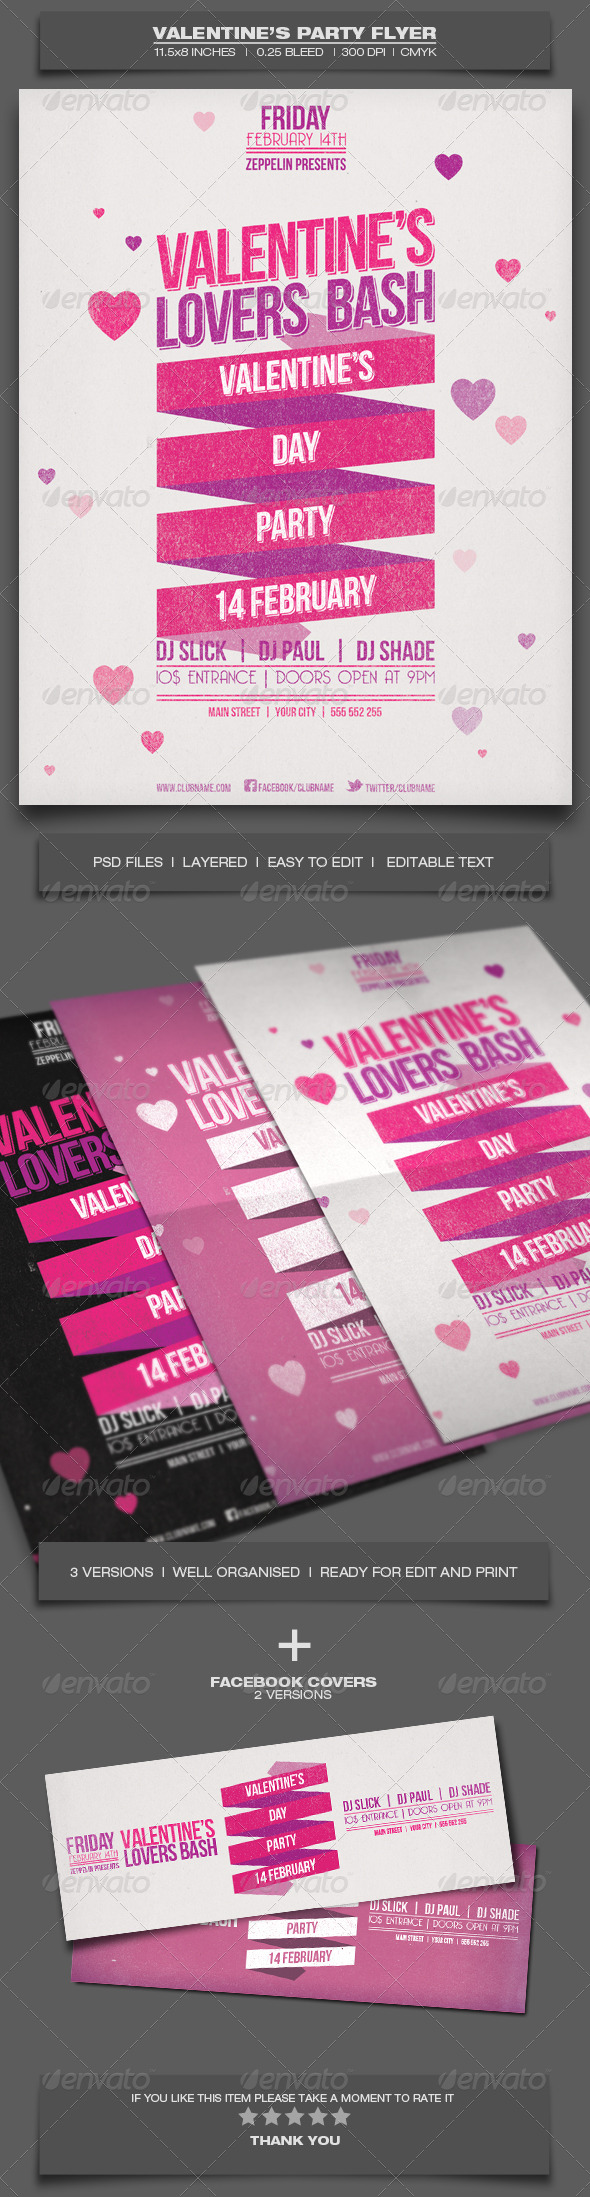 GraphicRiver Valentine s Day Party Event Flyer Template 2 6509805